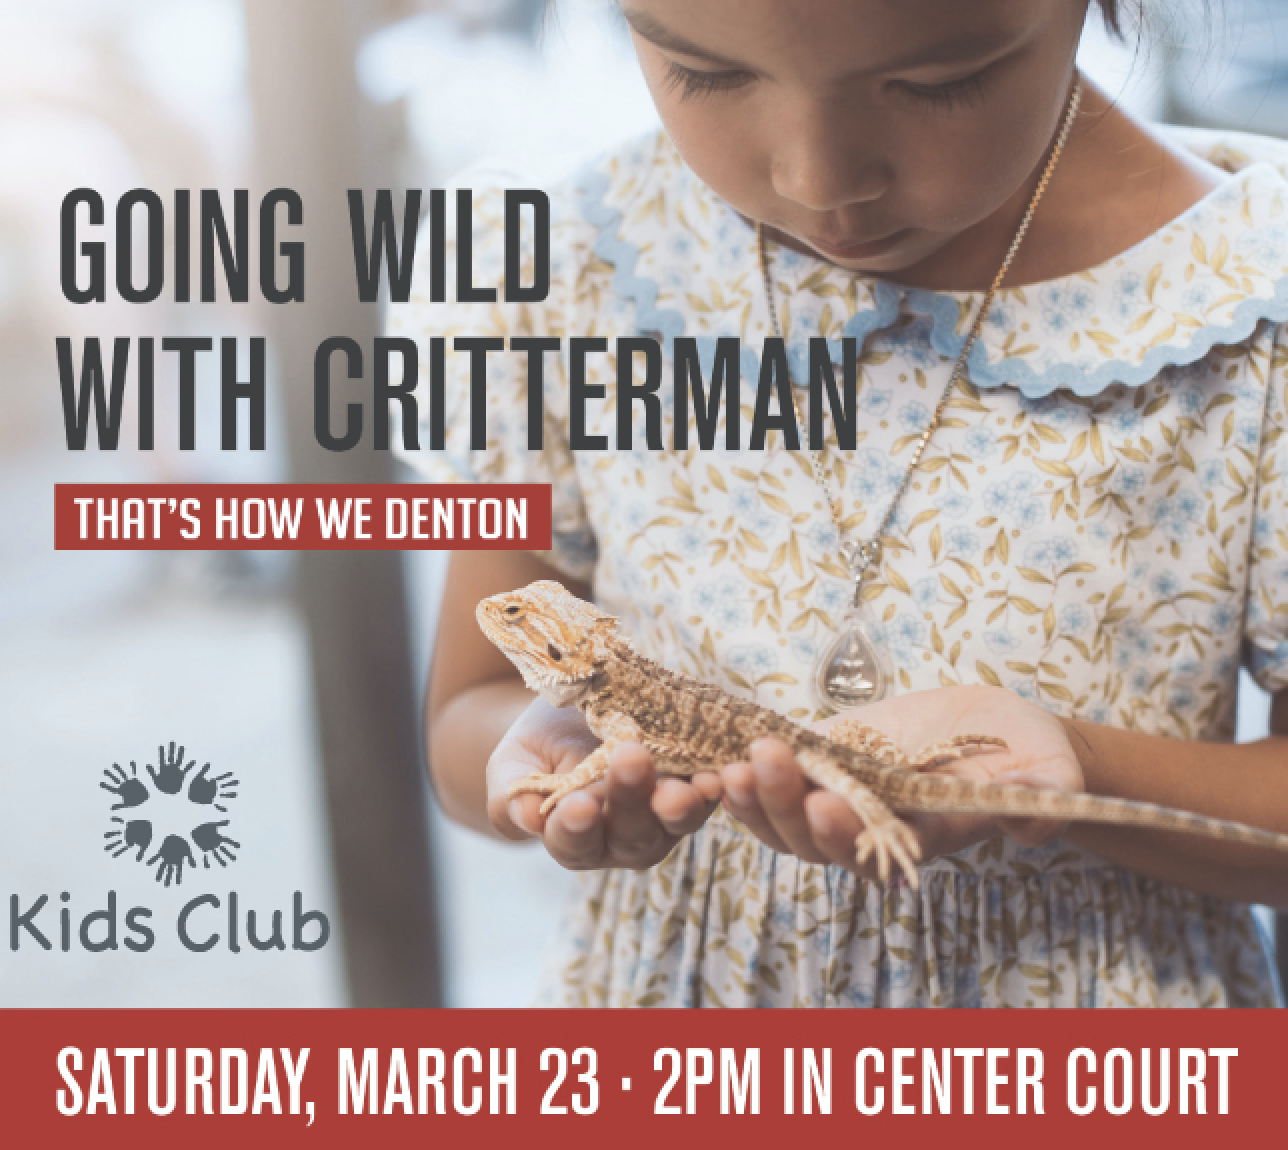 Going Wild with Critterman